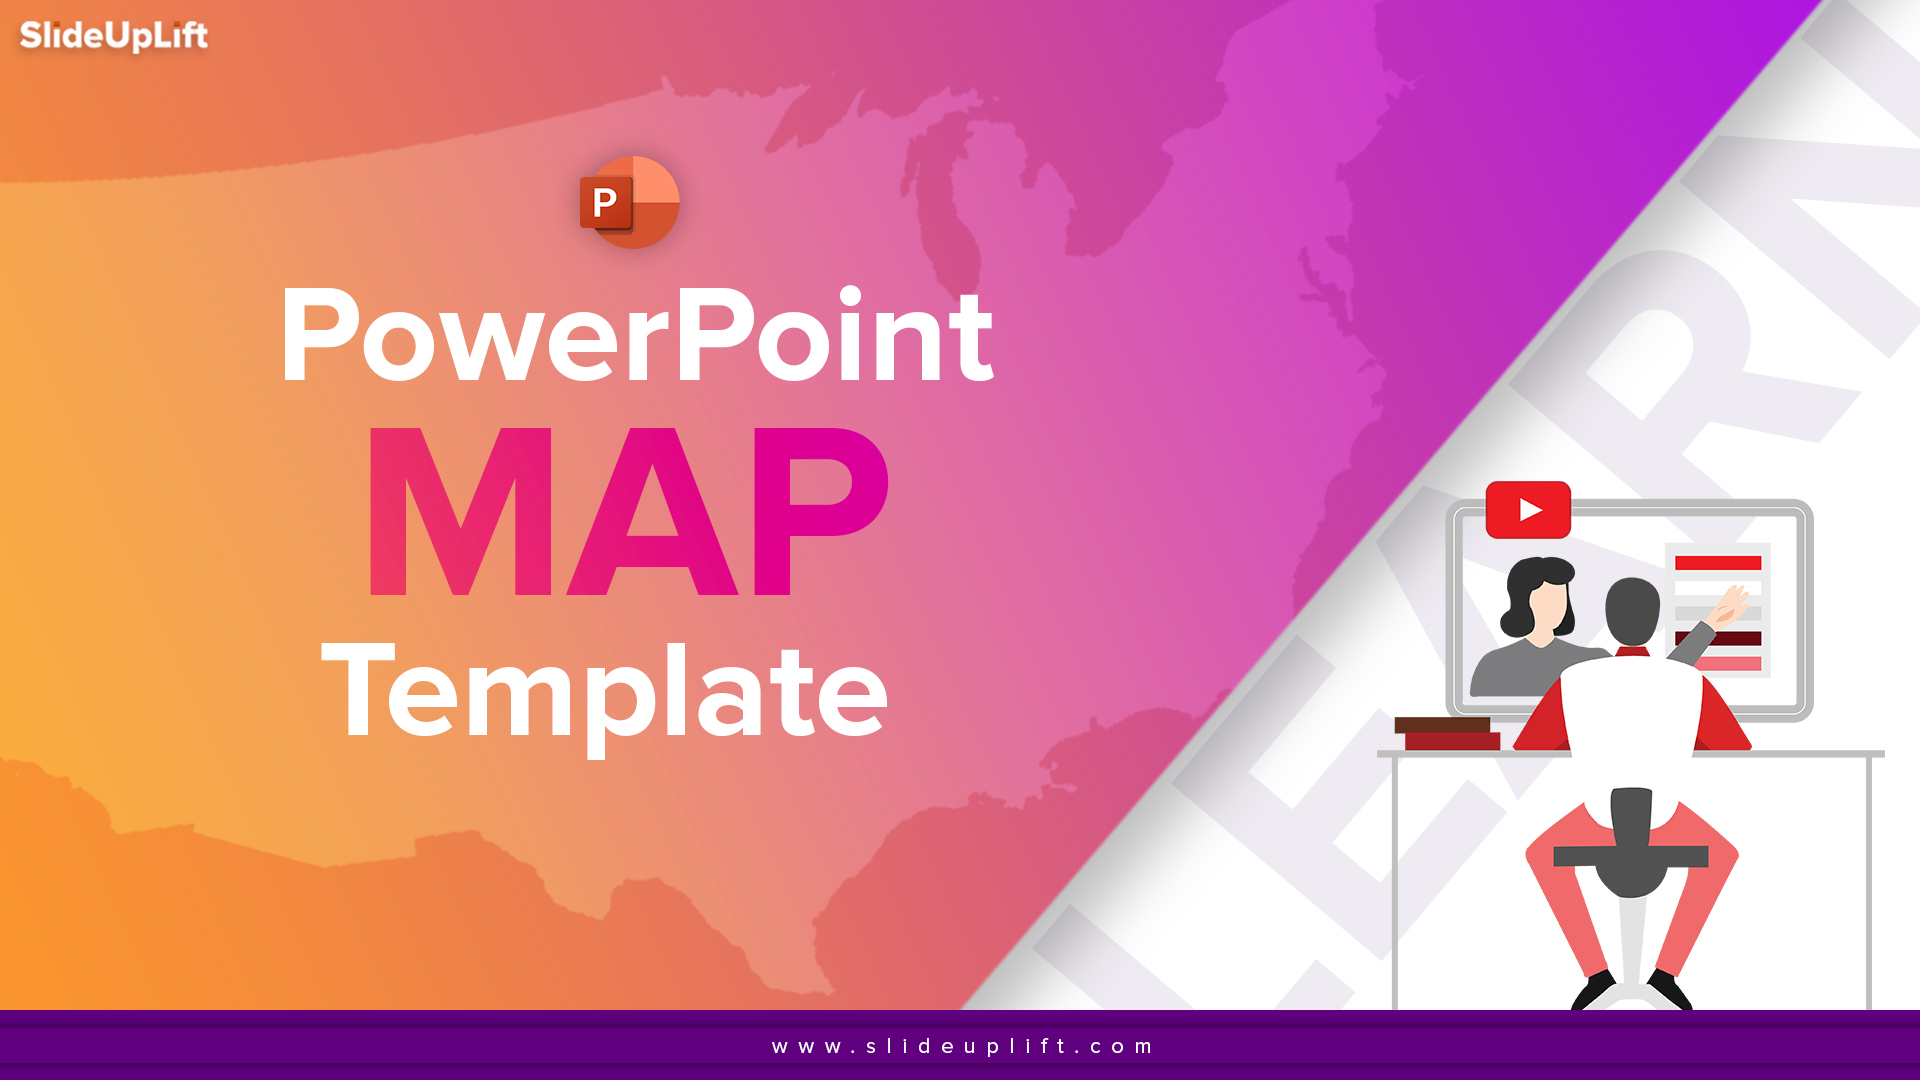 Learn How To Use PowerPoint Map Templates In Your Business Presentations